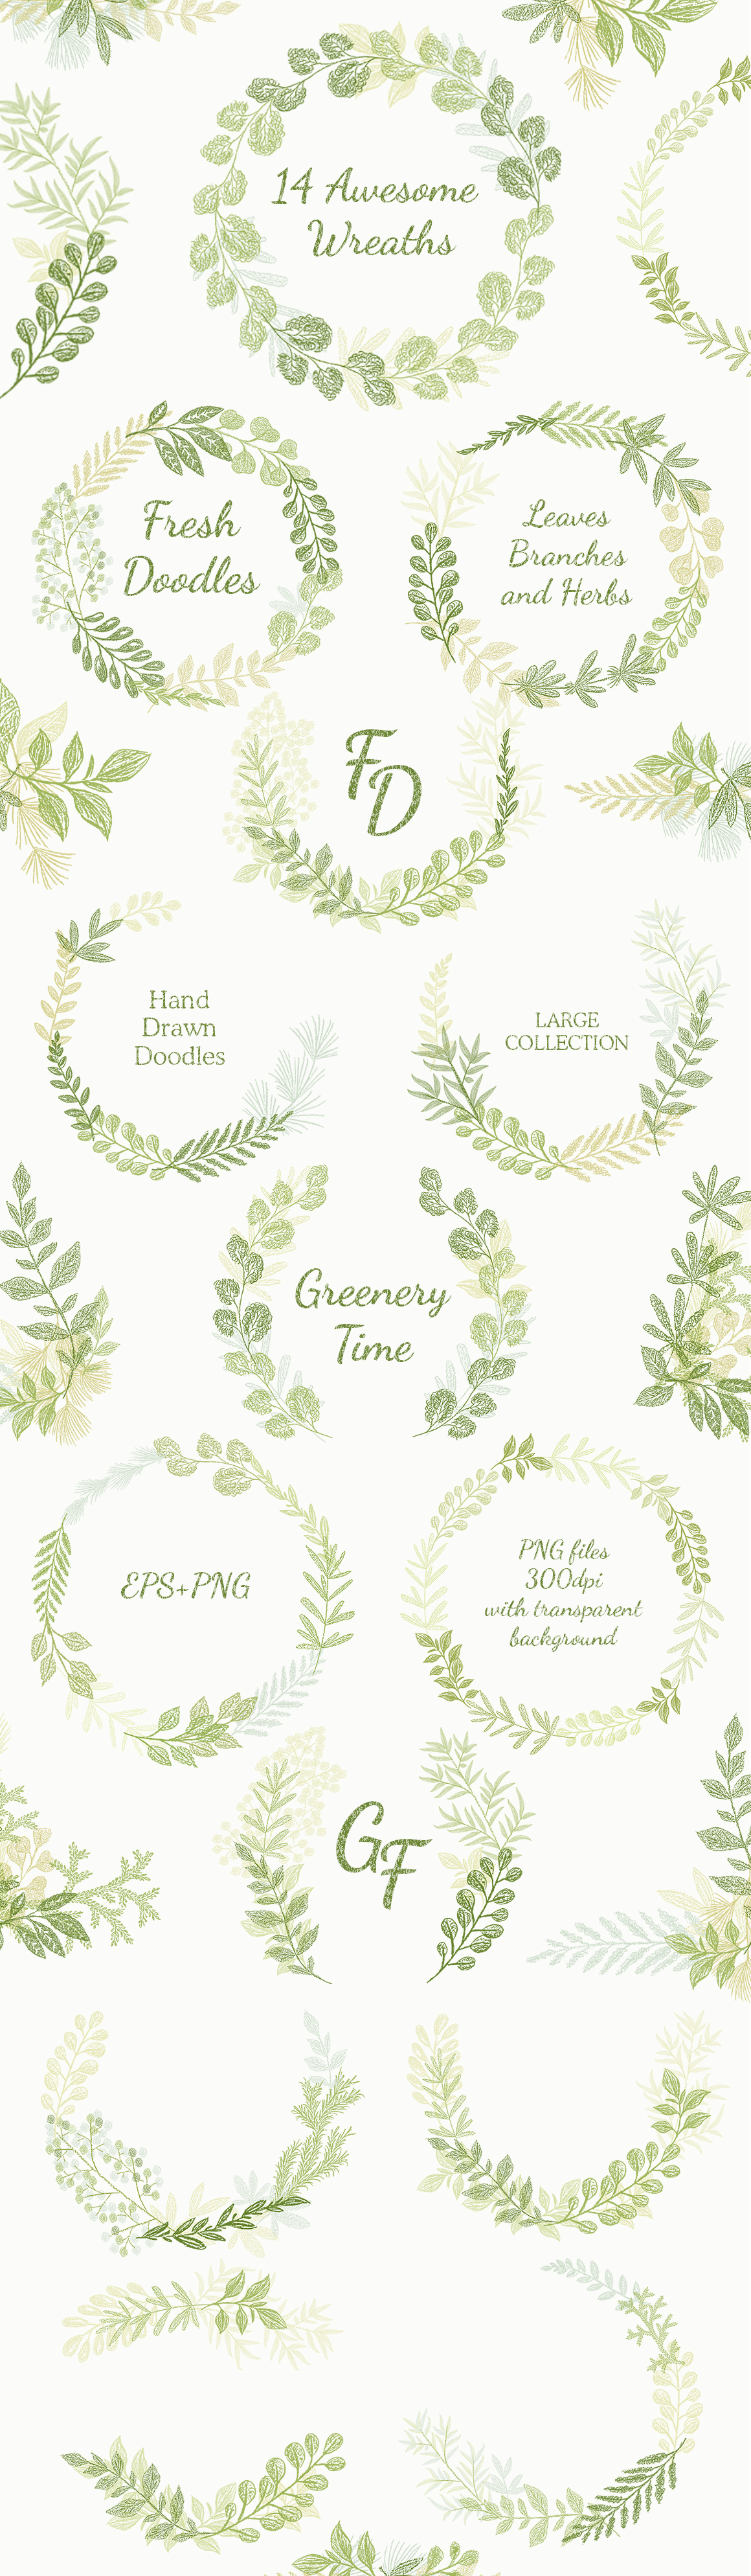 Hand drawn Leaves Branches & Herbs Fresh Doodle collection example image 3